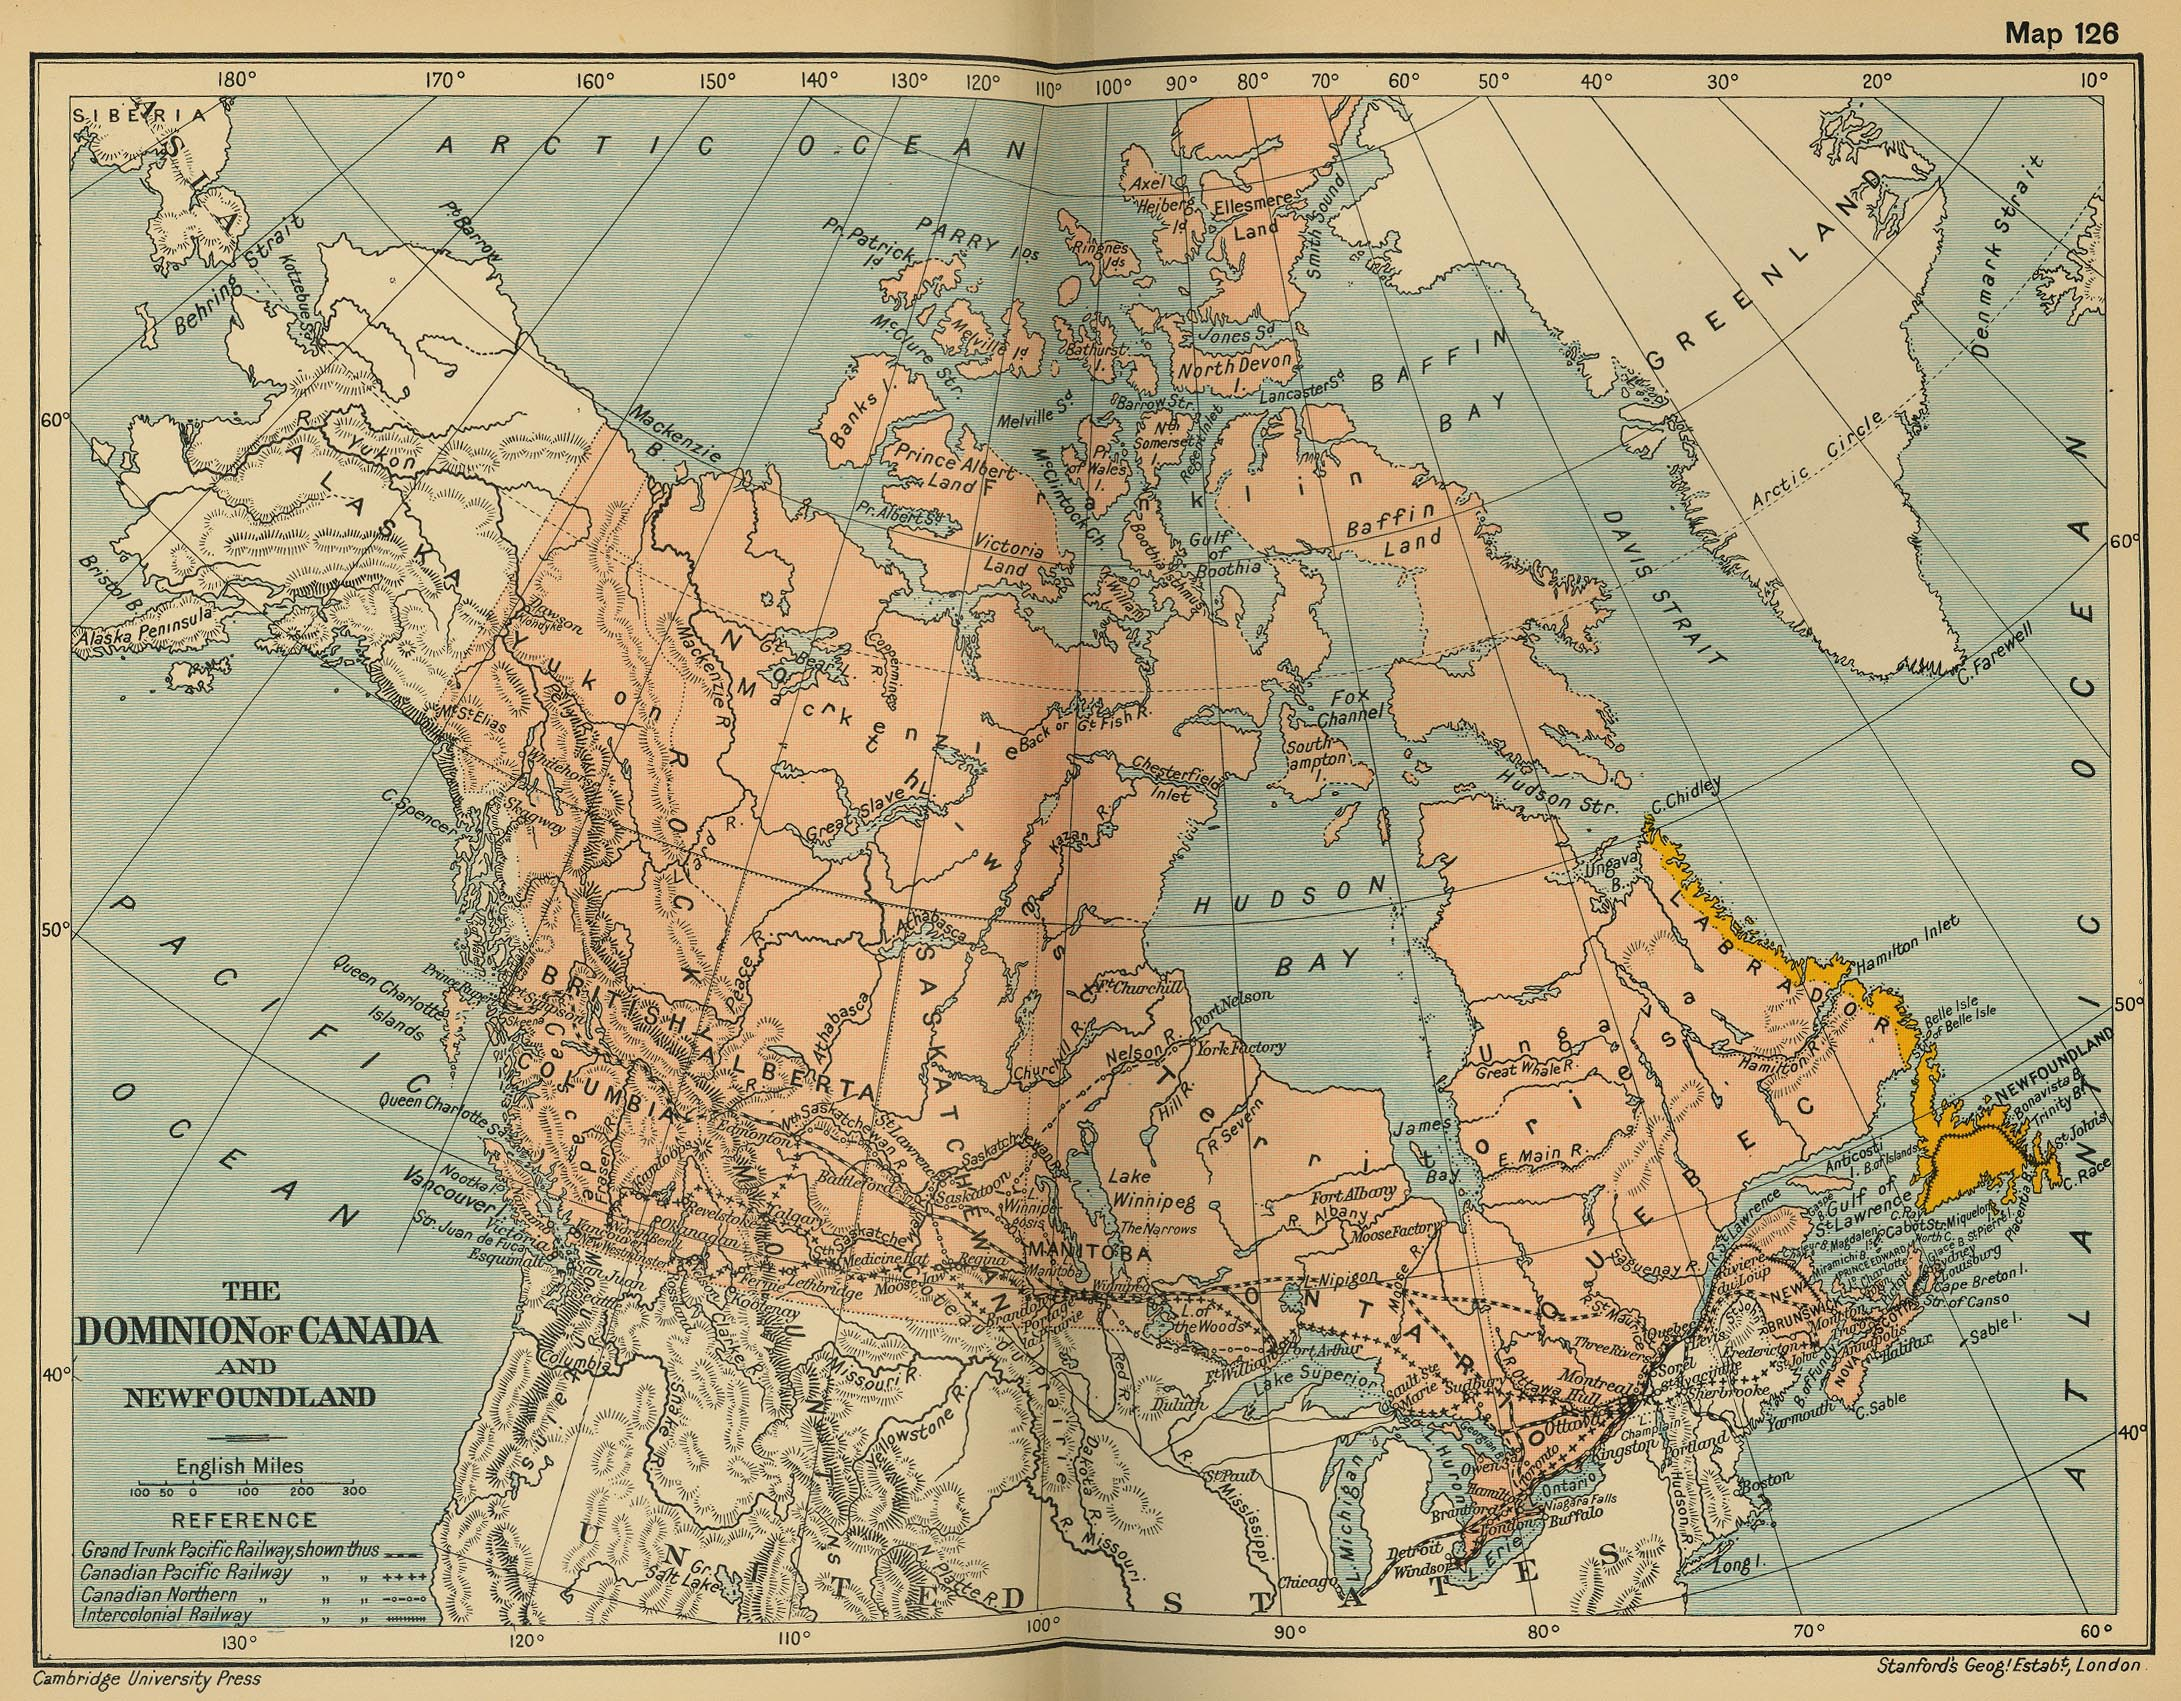 Of The Dominion Of Canada And Newfoundland - Newfoundland map